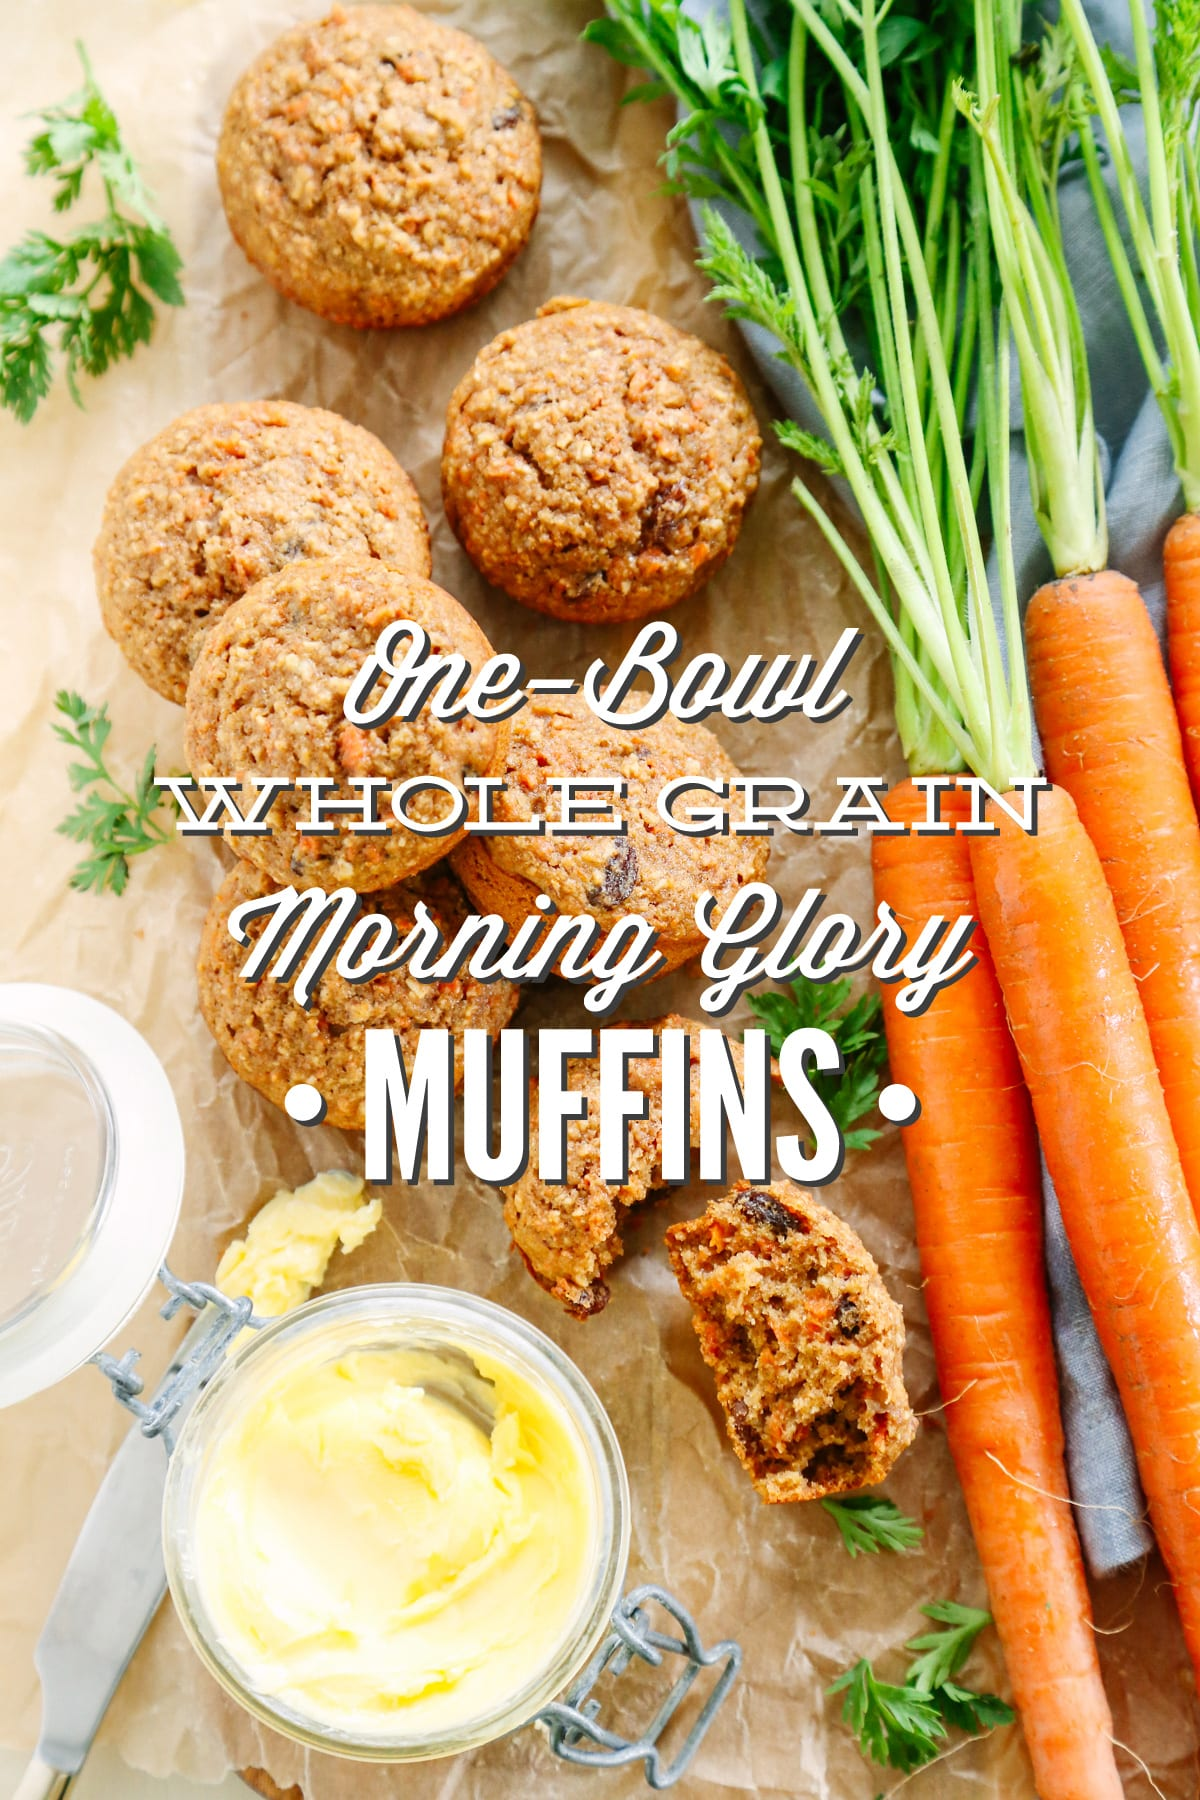 One-Bowl Whole Grain Morning Glory Muffins - Live Simply